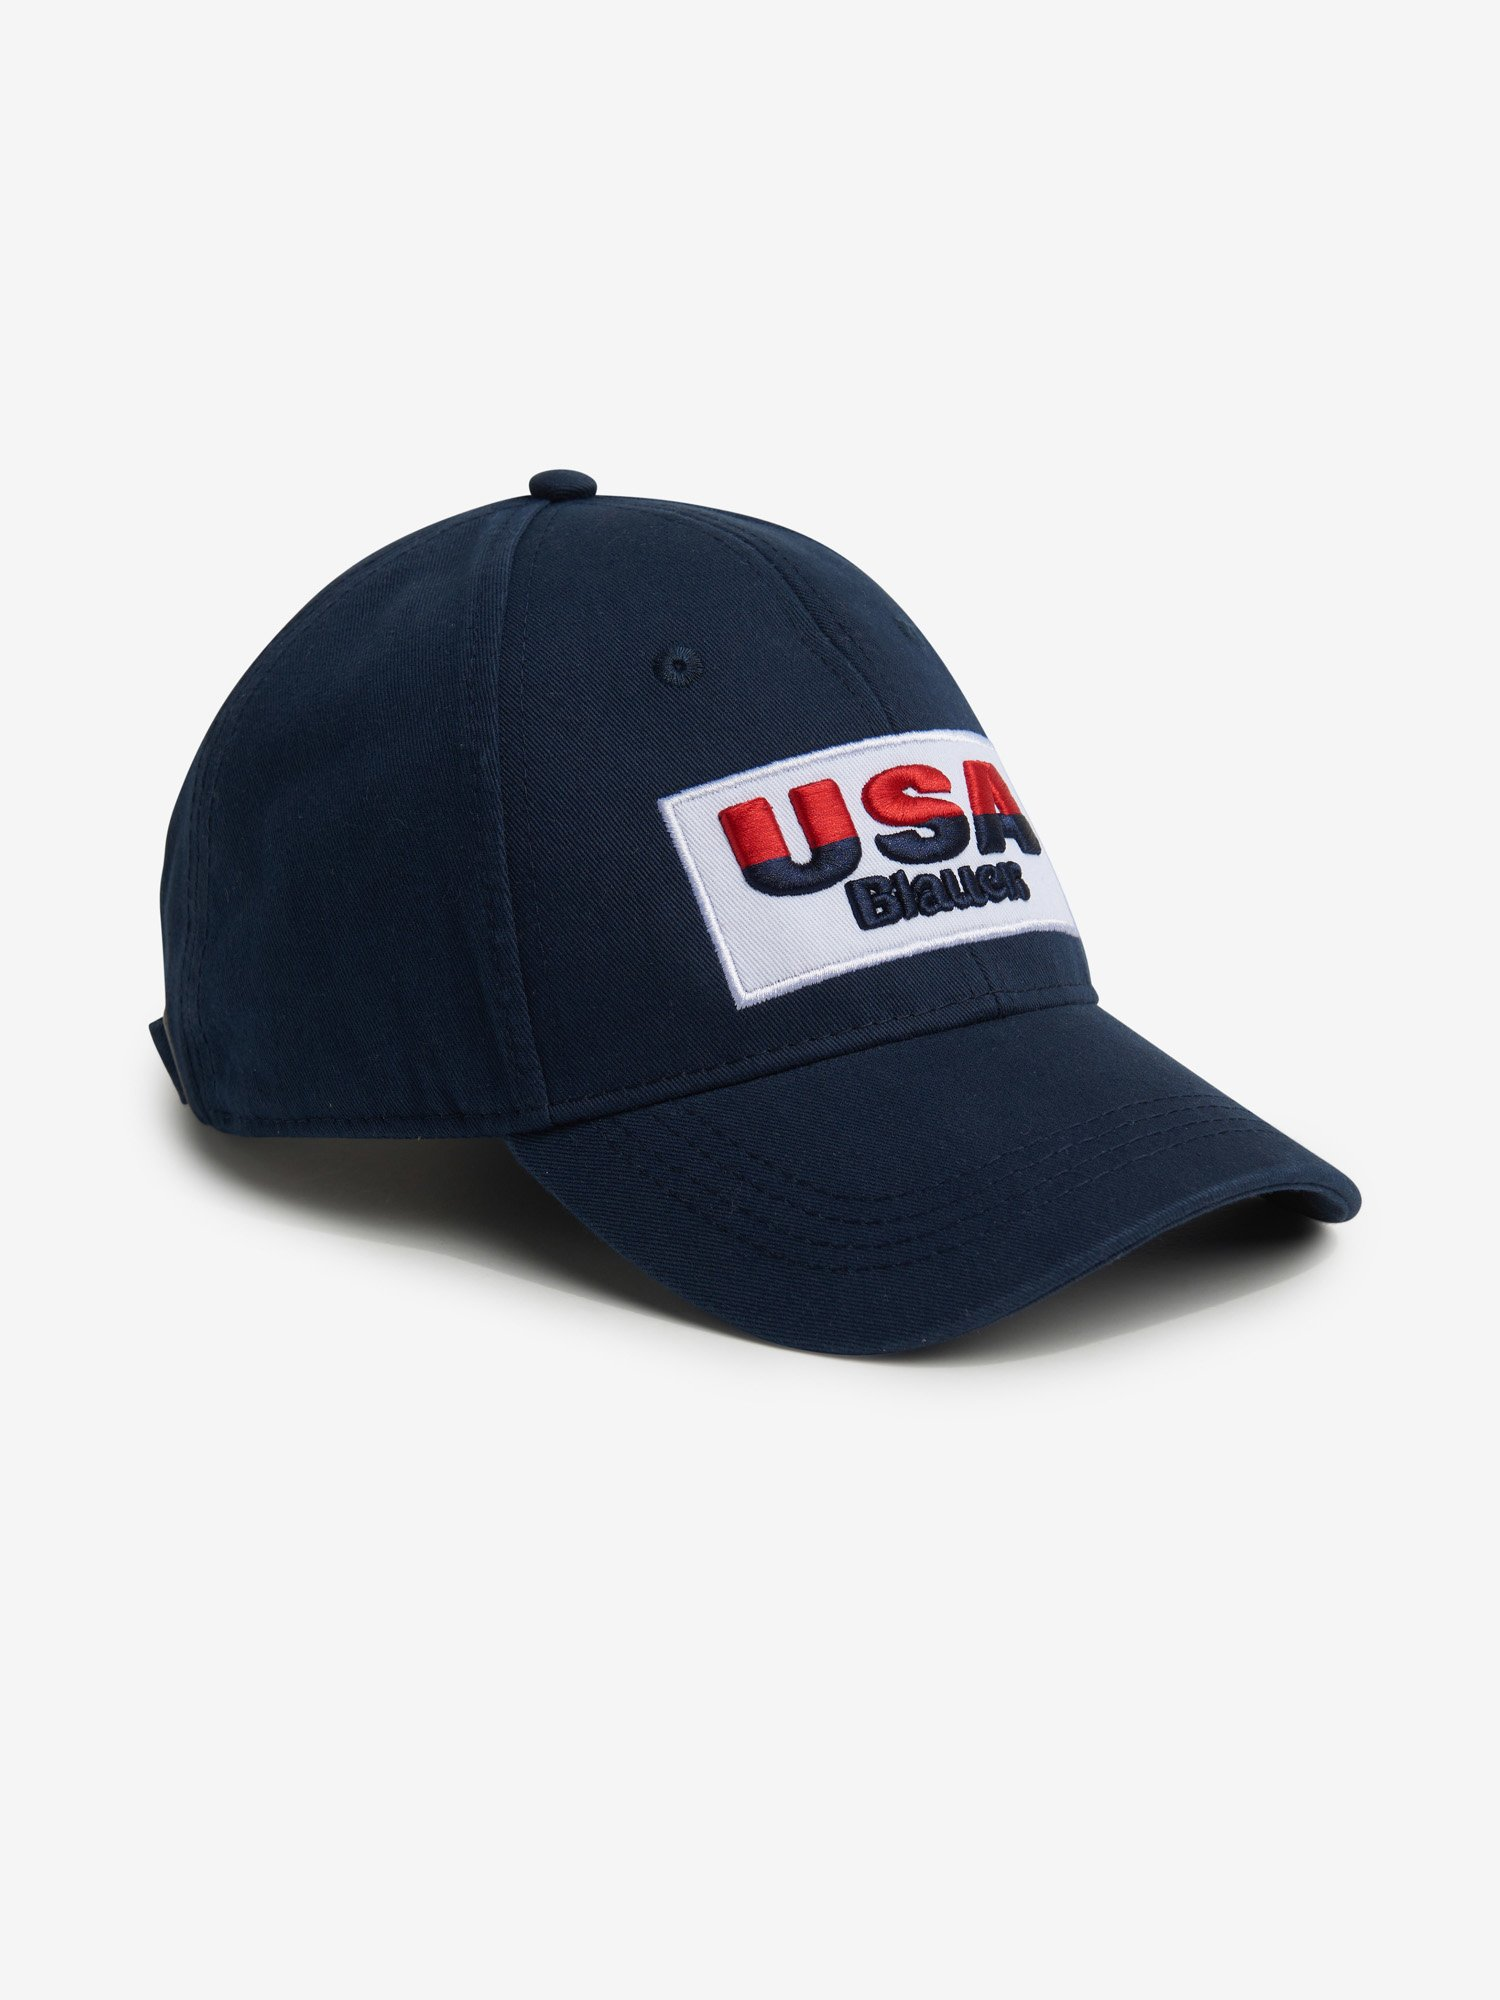 BOSTON SINCE 1936 BASEBALL CAP - Blauer